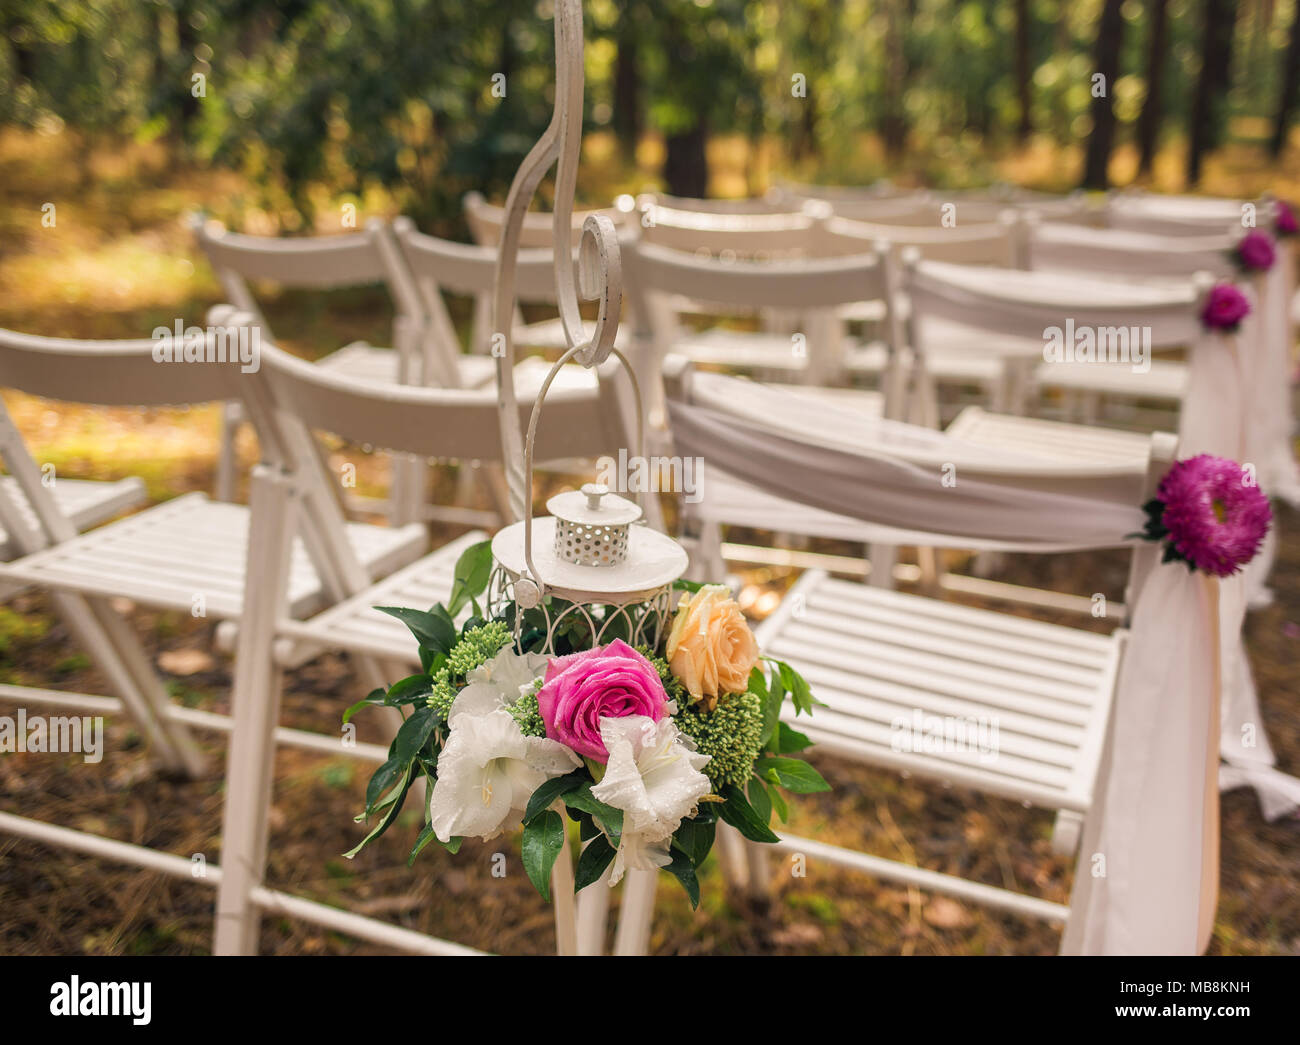 Floral Elegant Elements Of Wedding Decorations Settings For